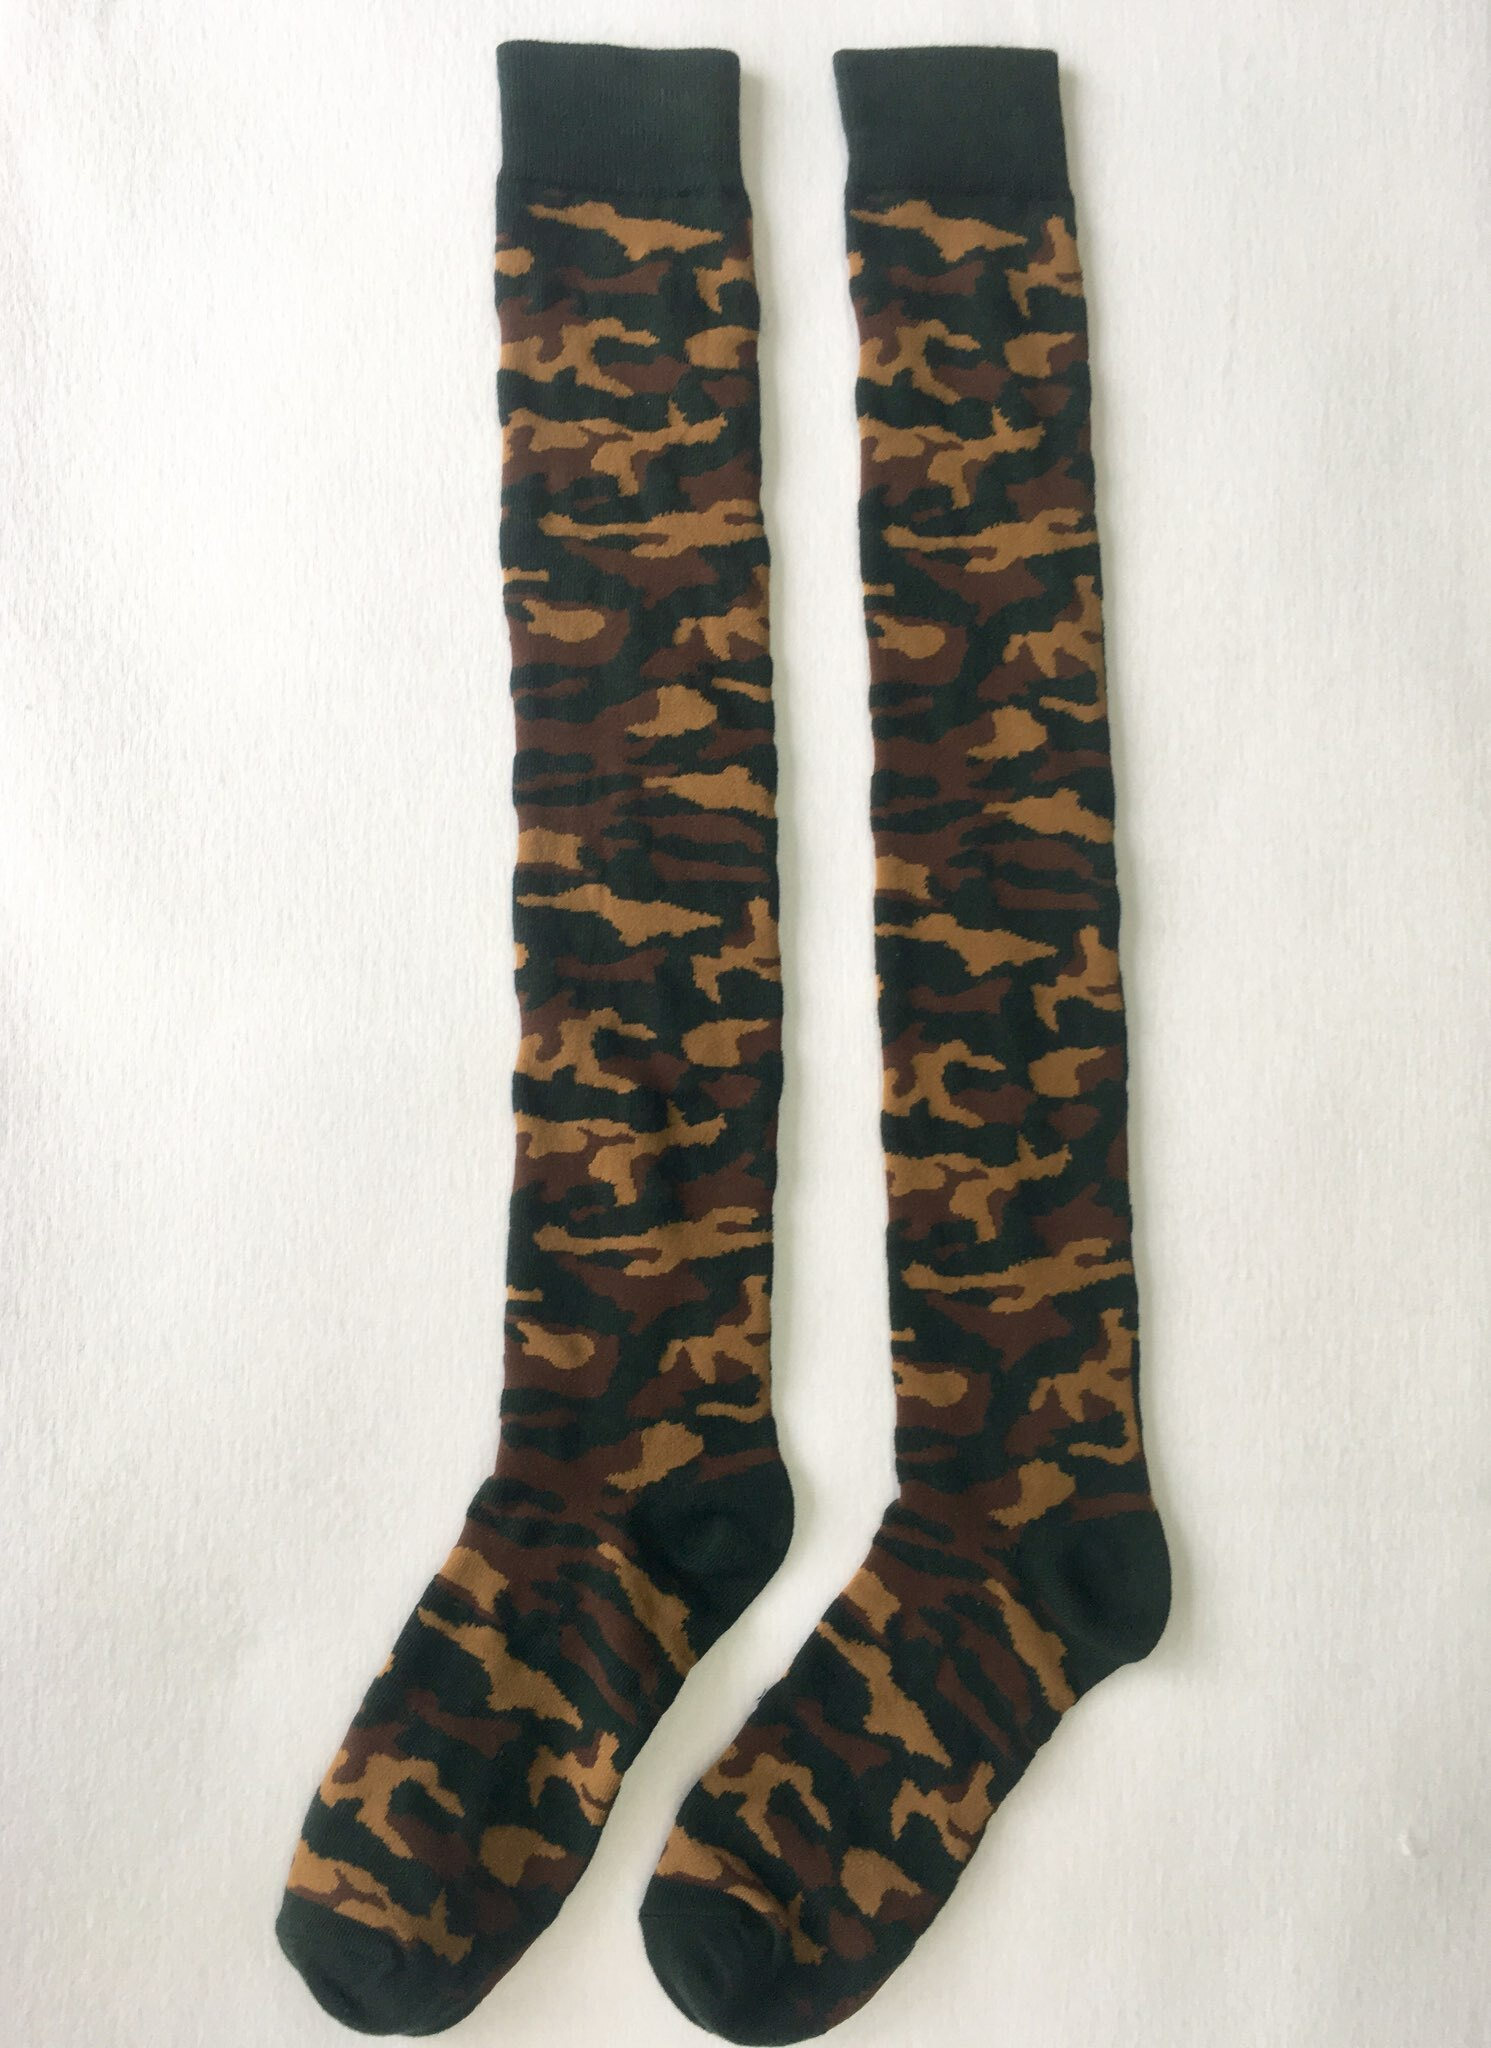 """Camouflage Knee High Socks - 20"""" Inches High VERY LIMITED QUANTITY!!!! CamoKH001"""